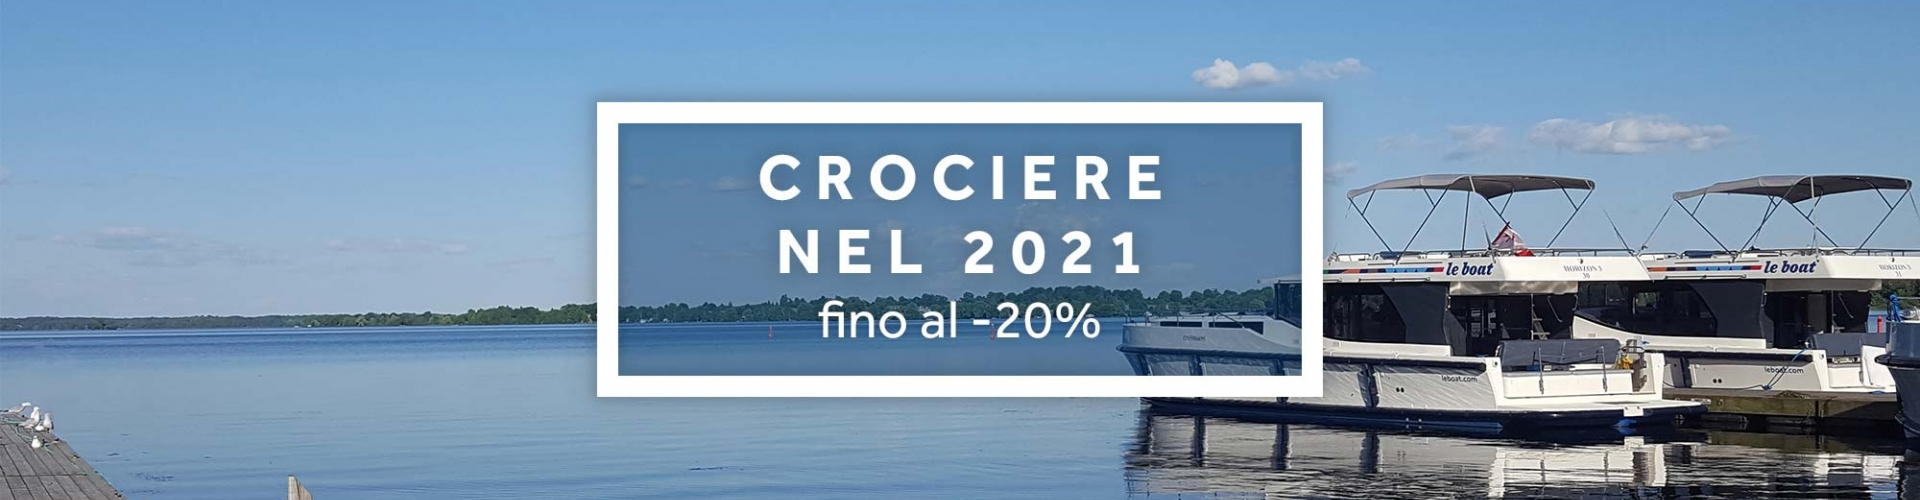 Crociere 2021 in houseboat